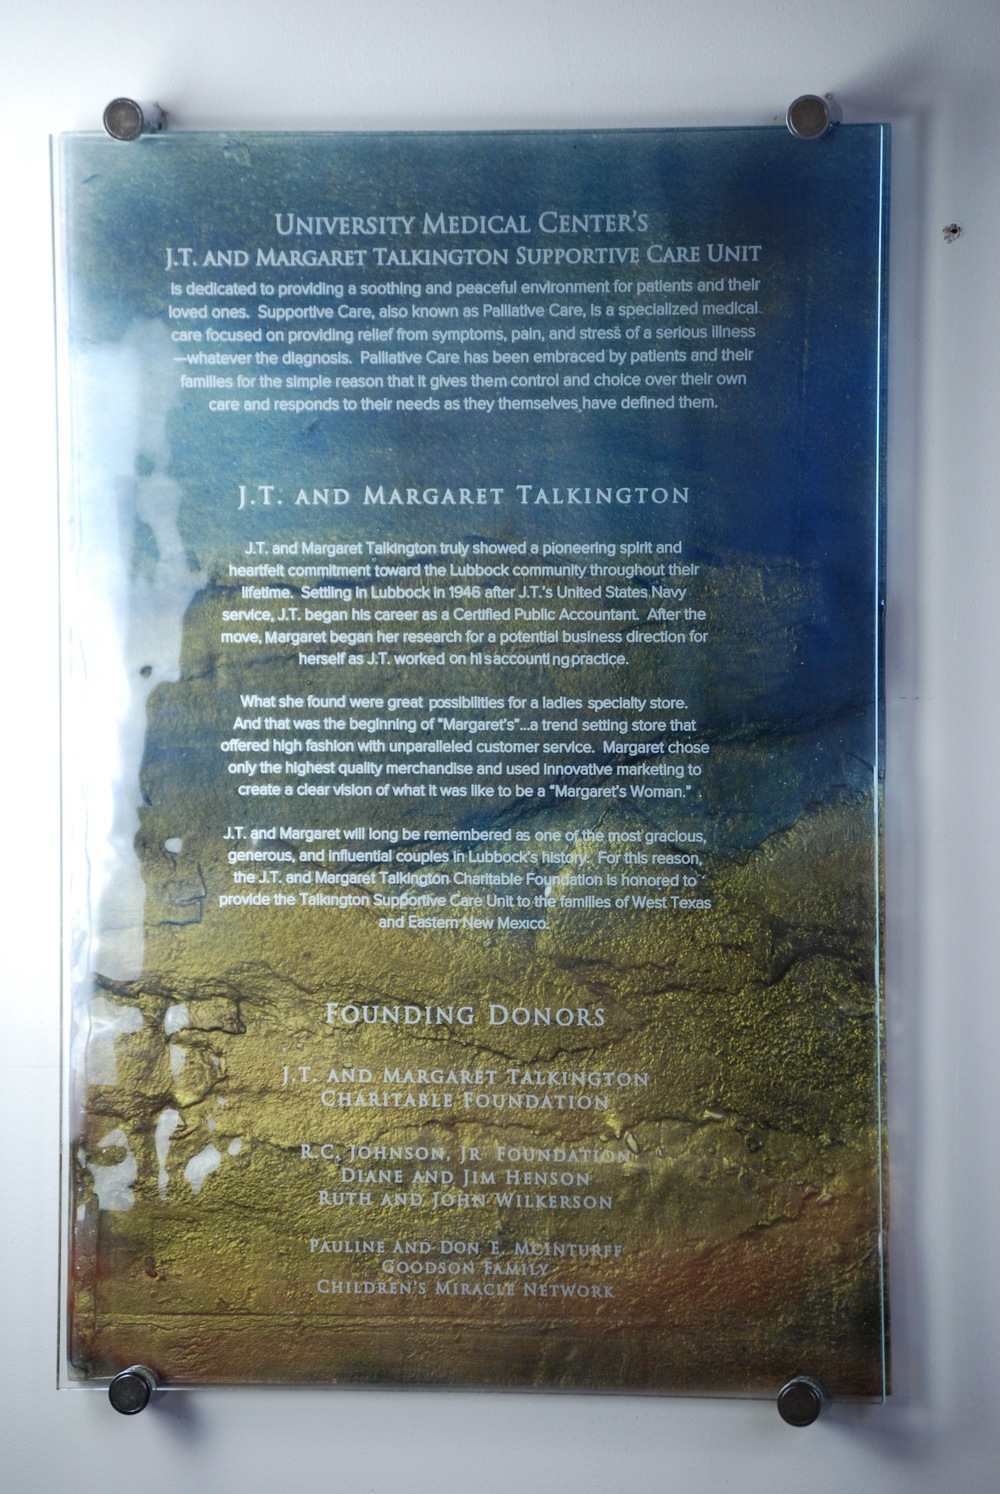 University Medical Center - Donor Recognition Panel - Fused and Hand-Painted Glass.